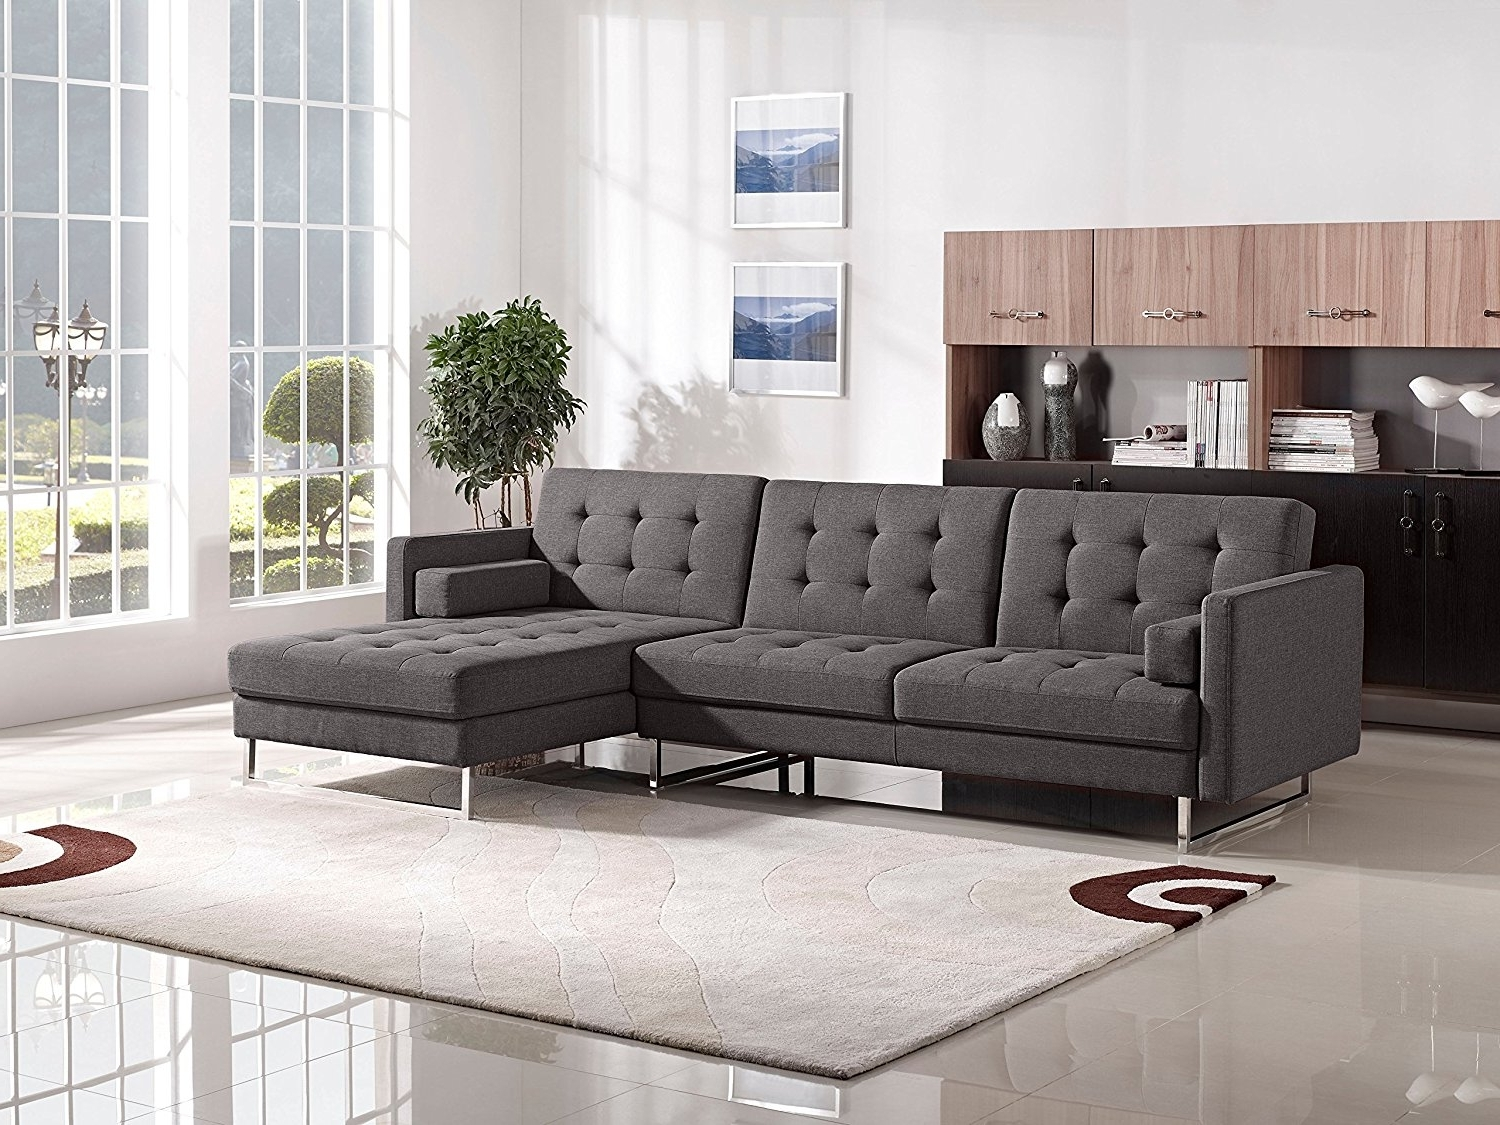 Affordable Tufted Sofas With 2017 Sofa : Cheap Tufted Sofas Tufted White Sofa Grey Tufted Sofa (View 4 of 15)